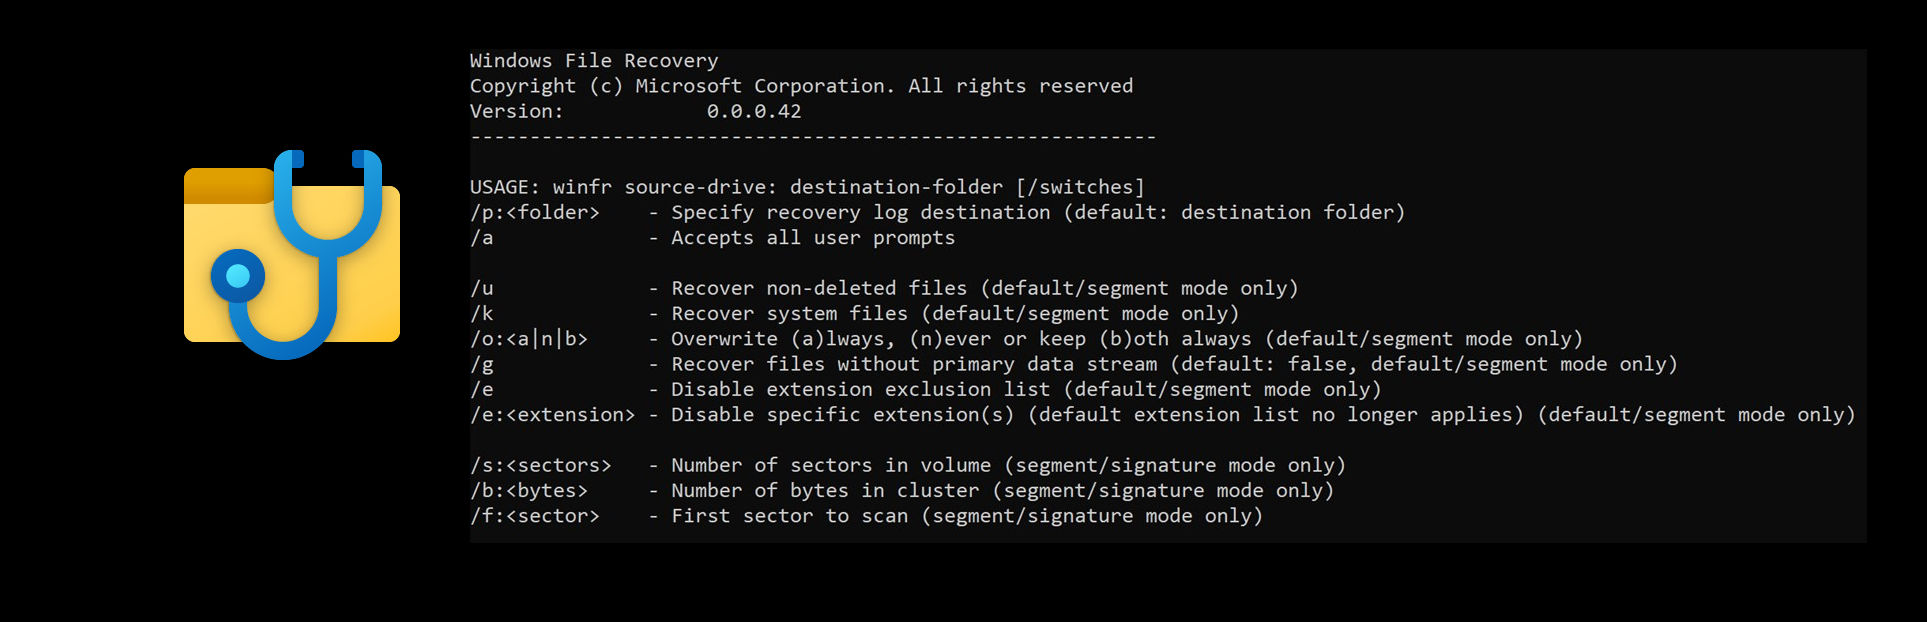 Microsoft Release Windows File Recovery Tool To The